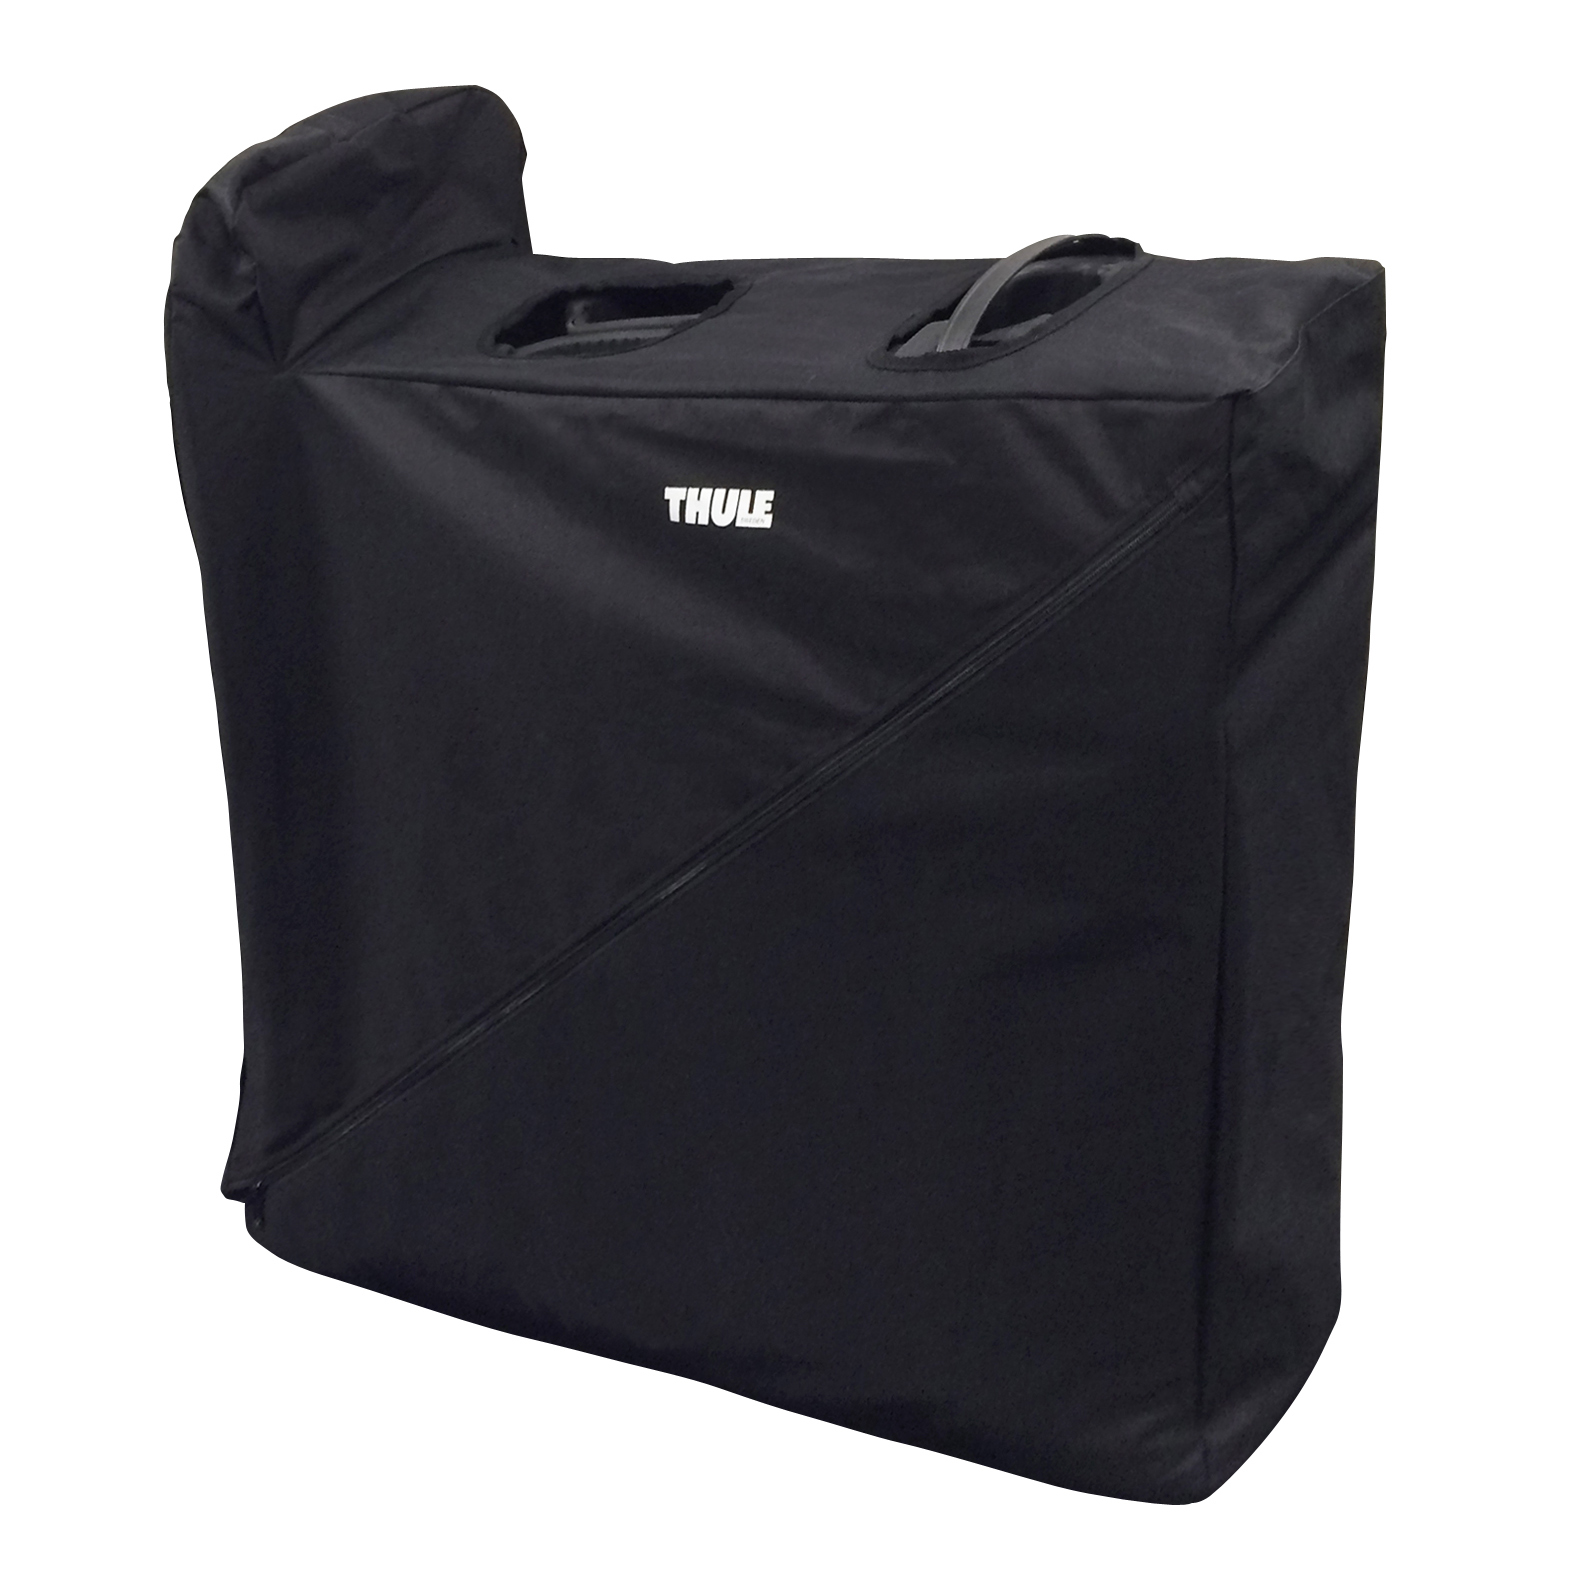 Thule EasyFold XT 3 Bike Carrying Bag 9344